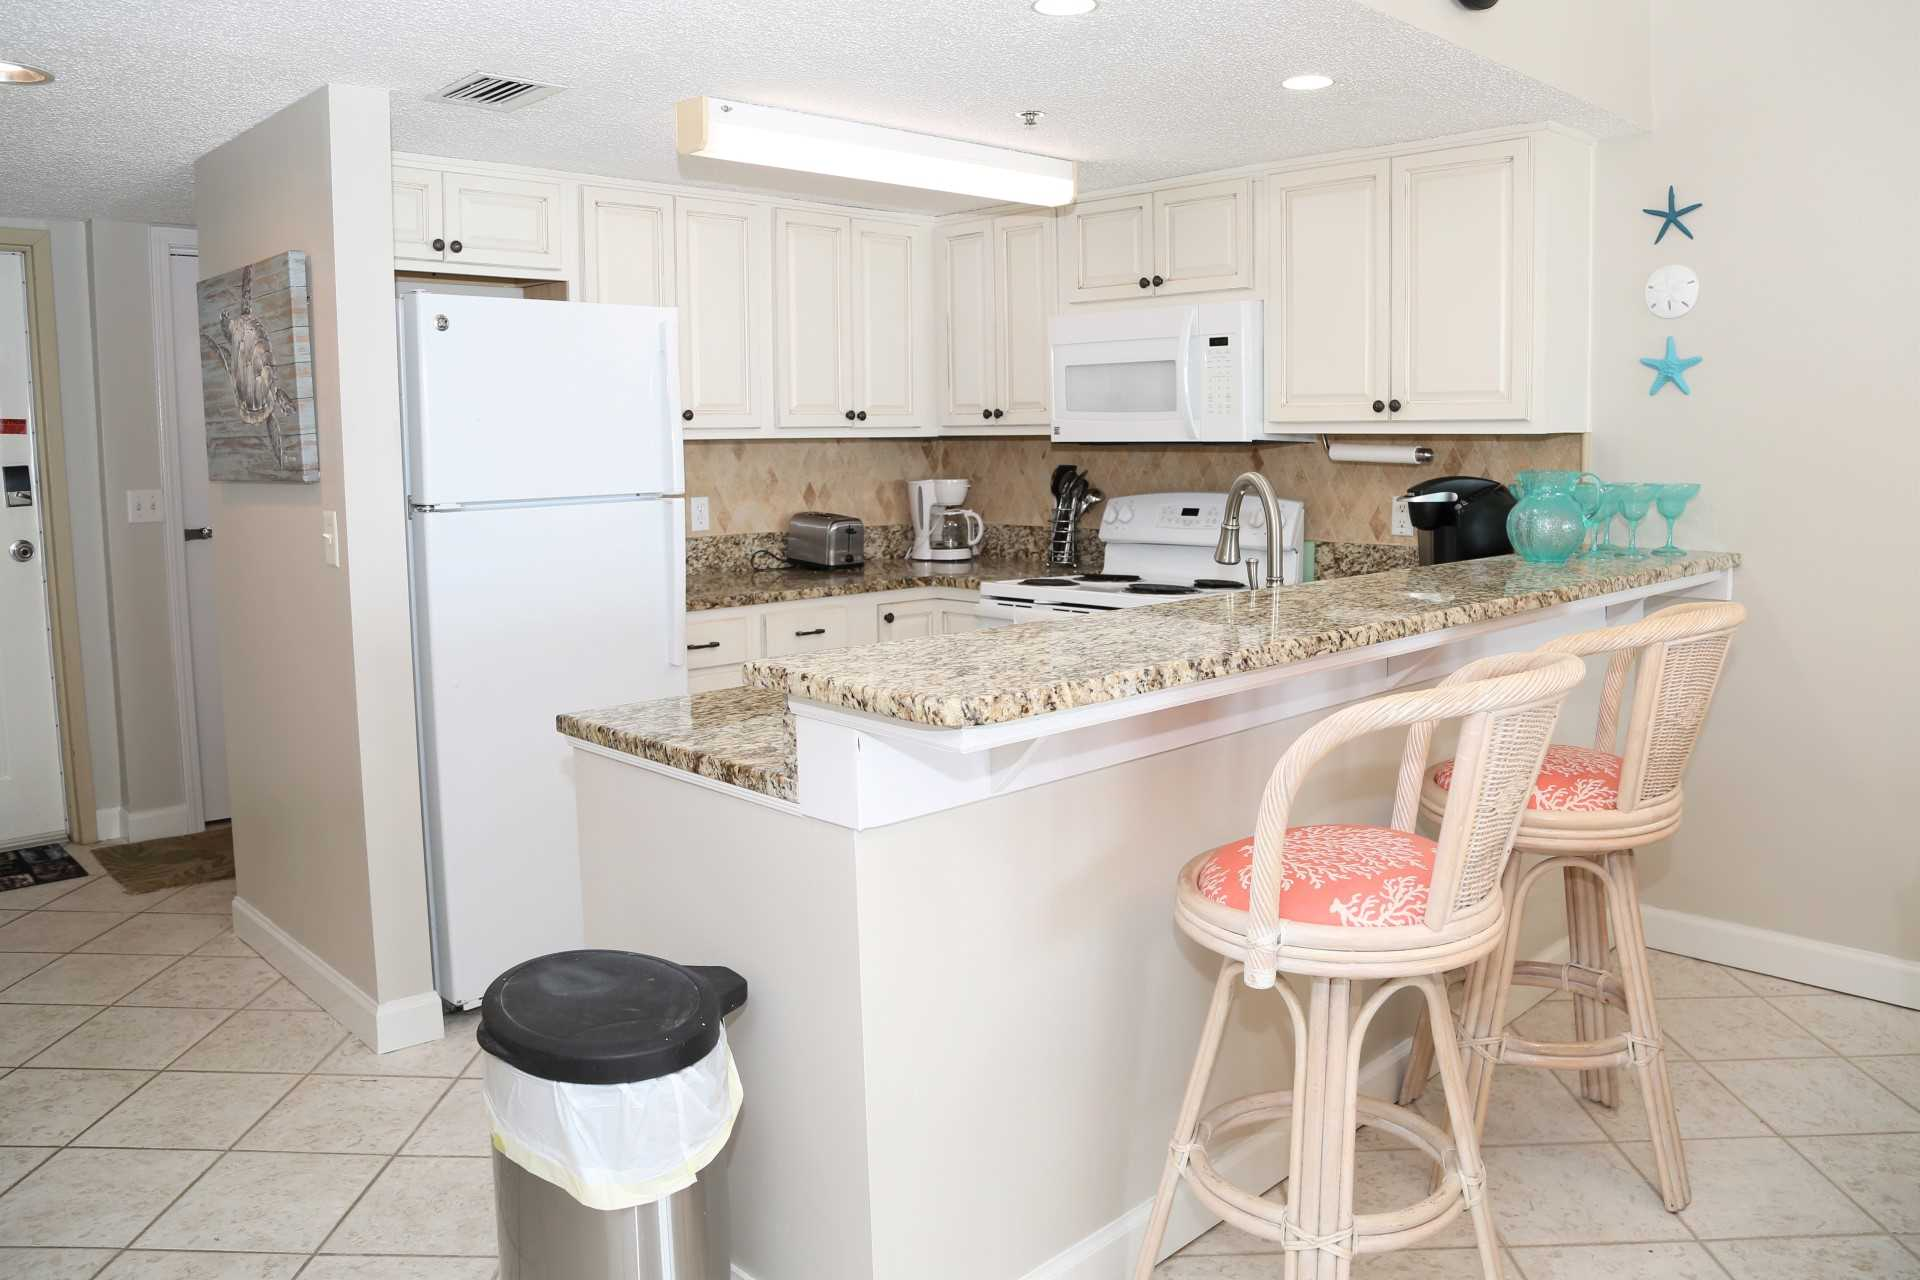 The kitchen is fully equipped to whip up home-cooked meals.